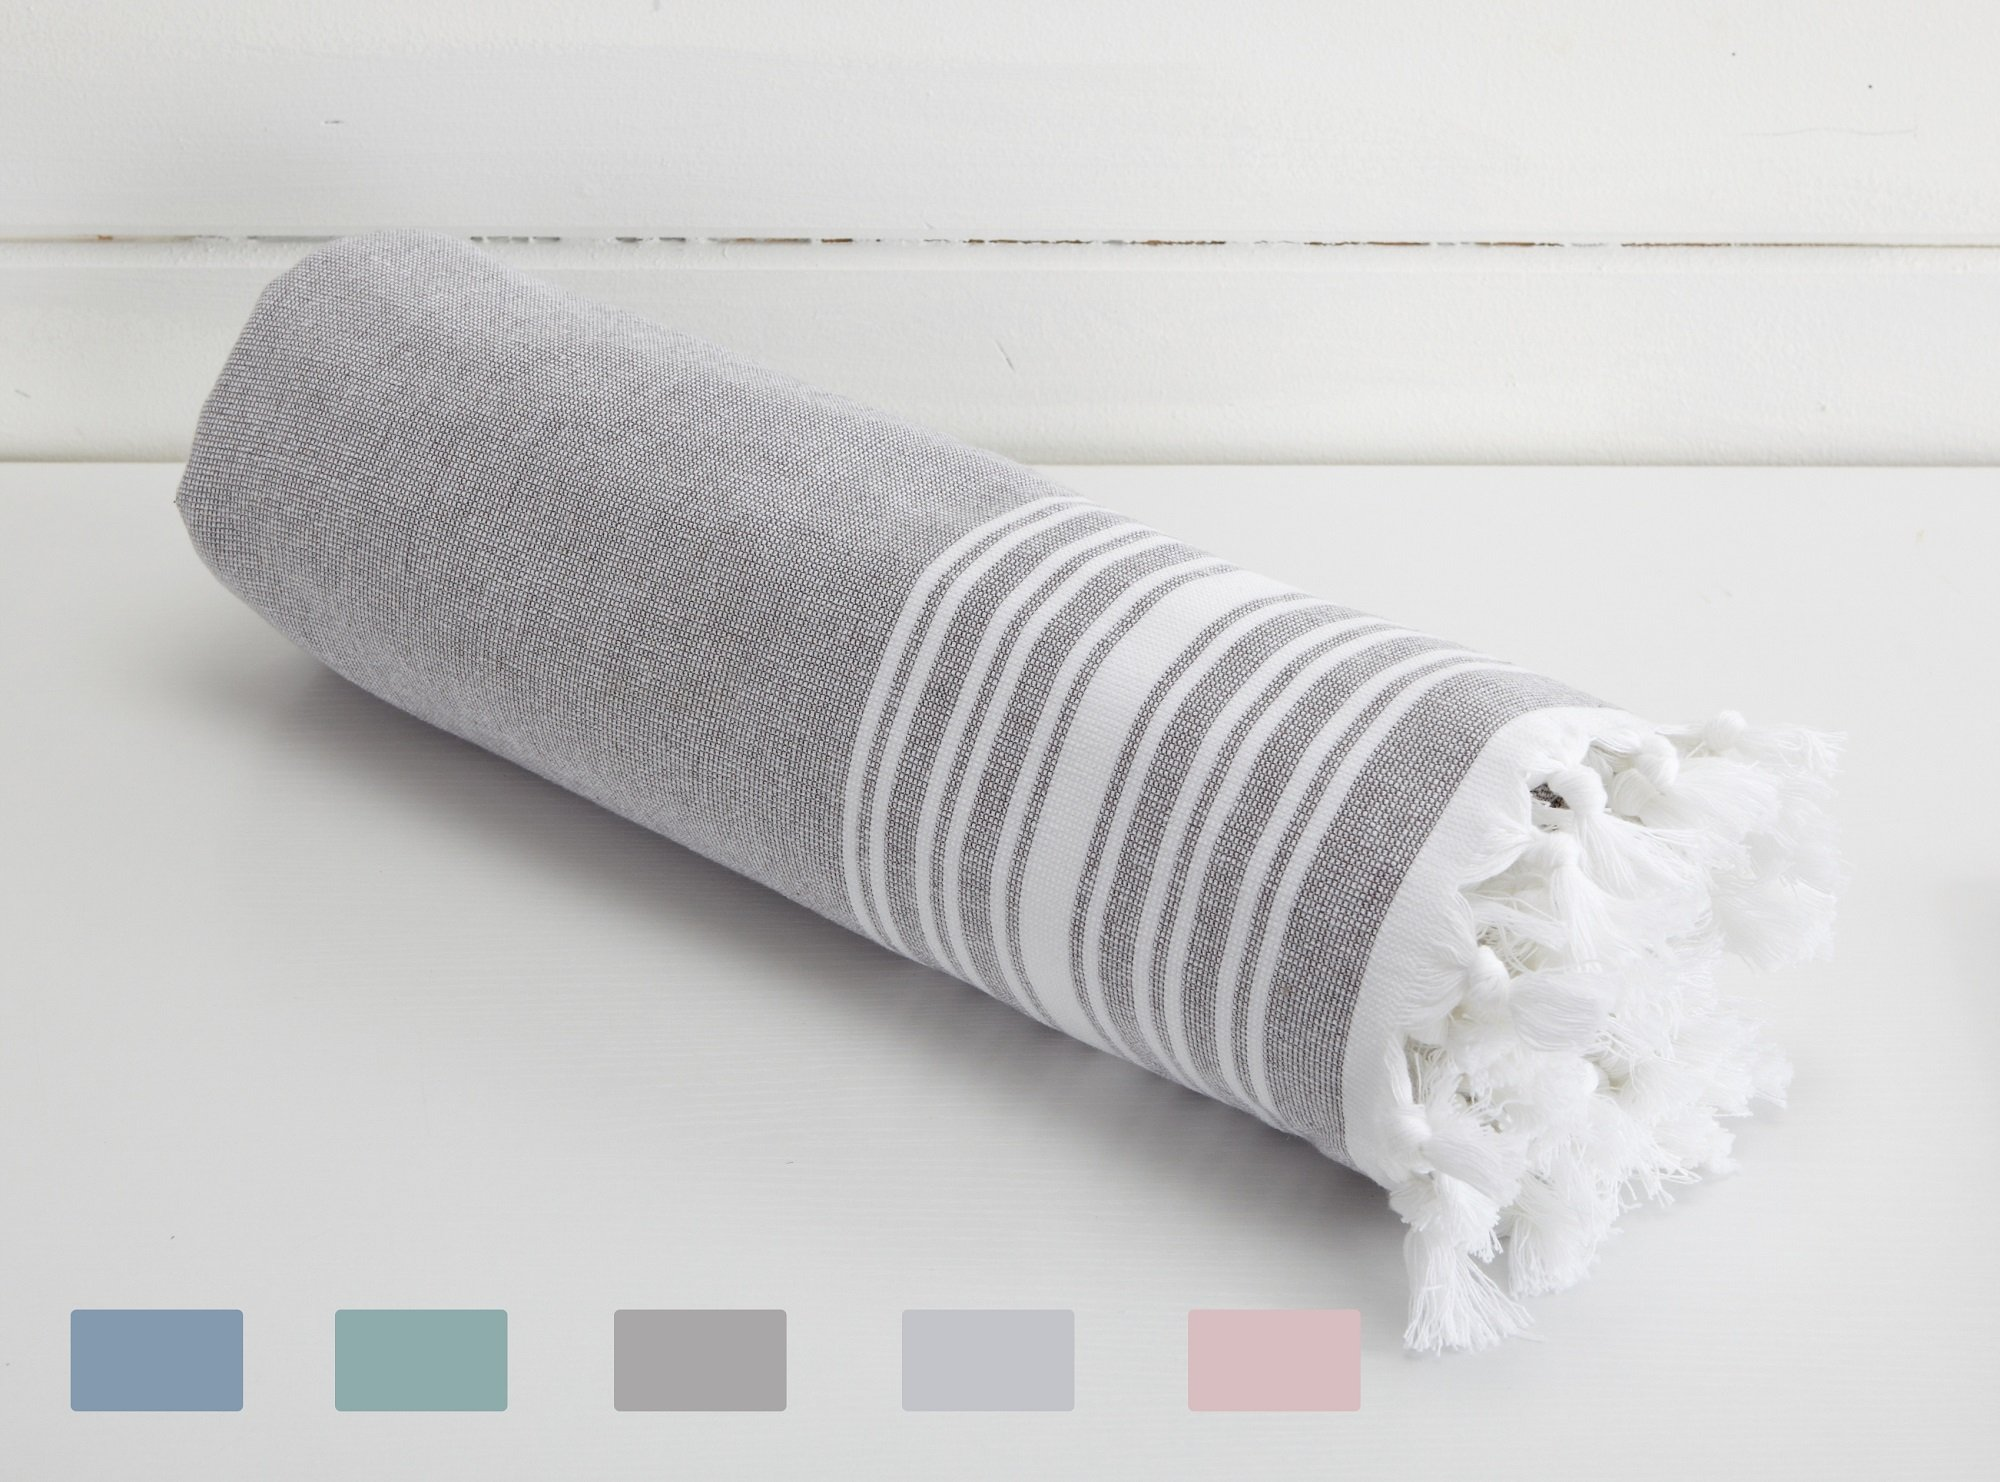 Home Fashion Designs Blossom Linens 100% Cotton Beach Towel and Oversize Bath Towel with Elegant Fouta Design, 500 GSM. By Brand. (Dark Grey)